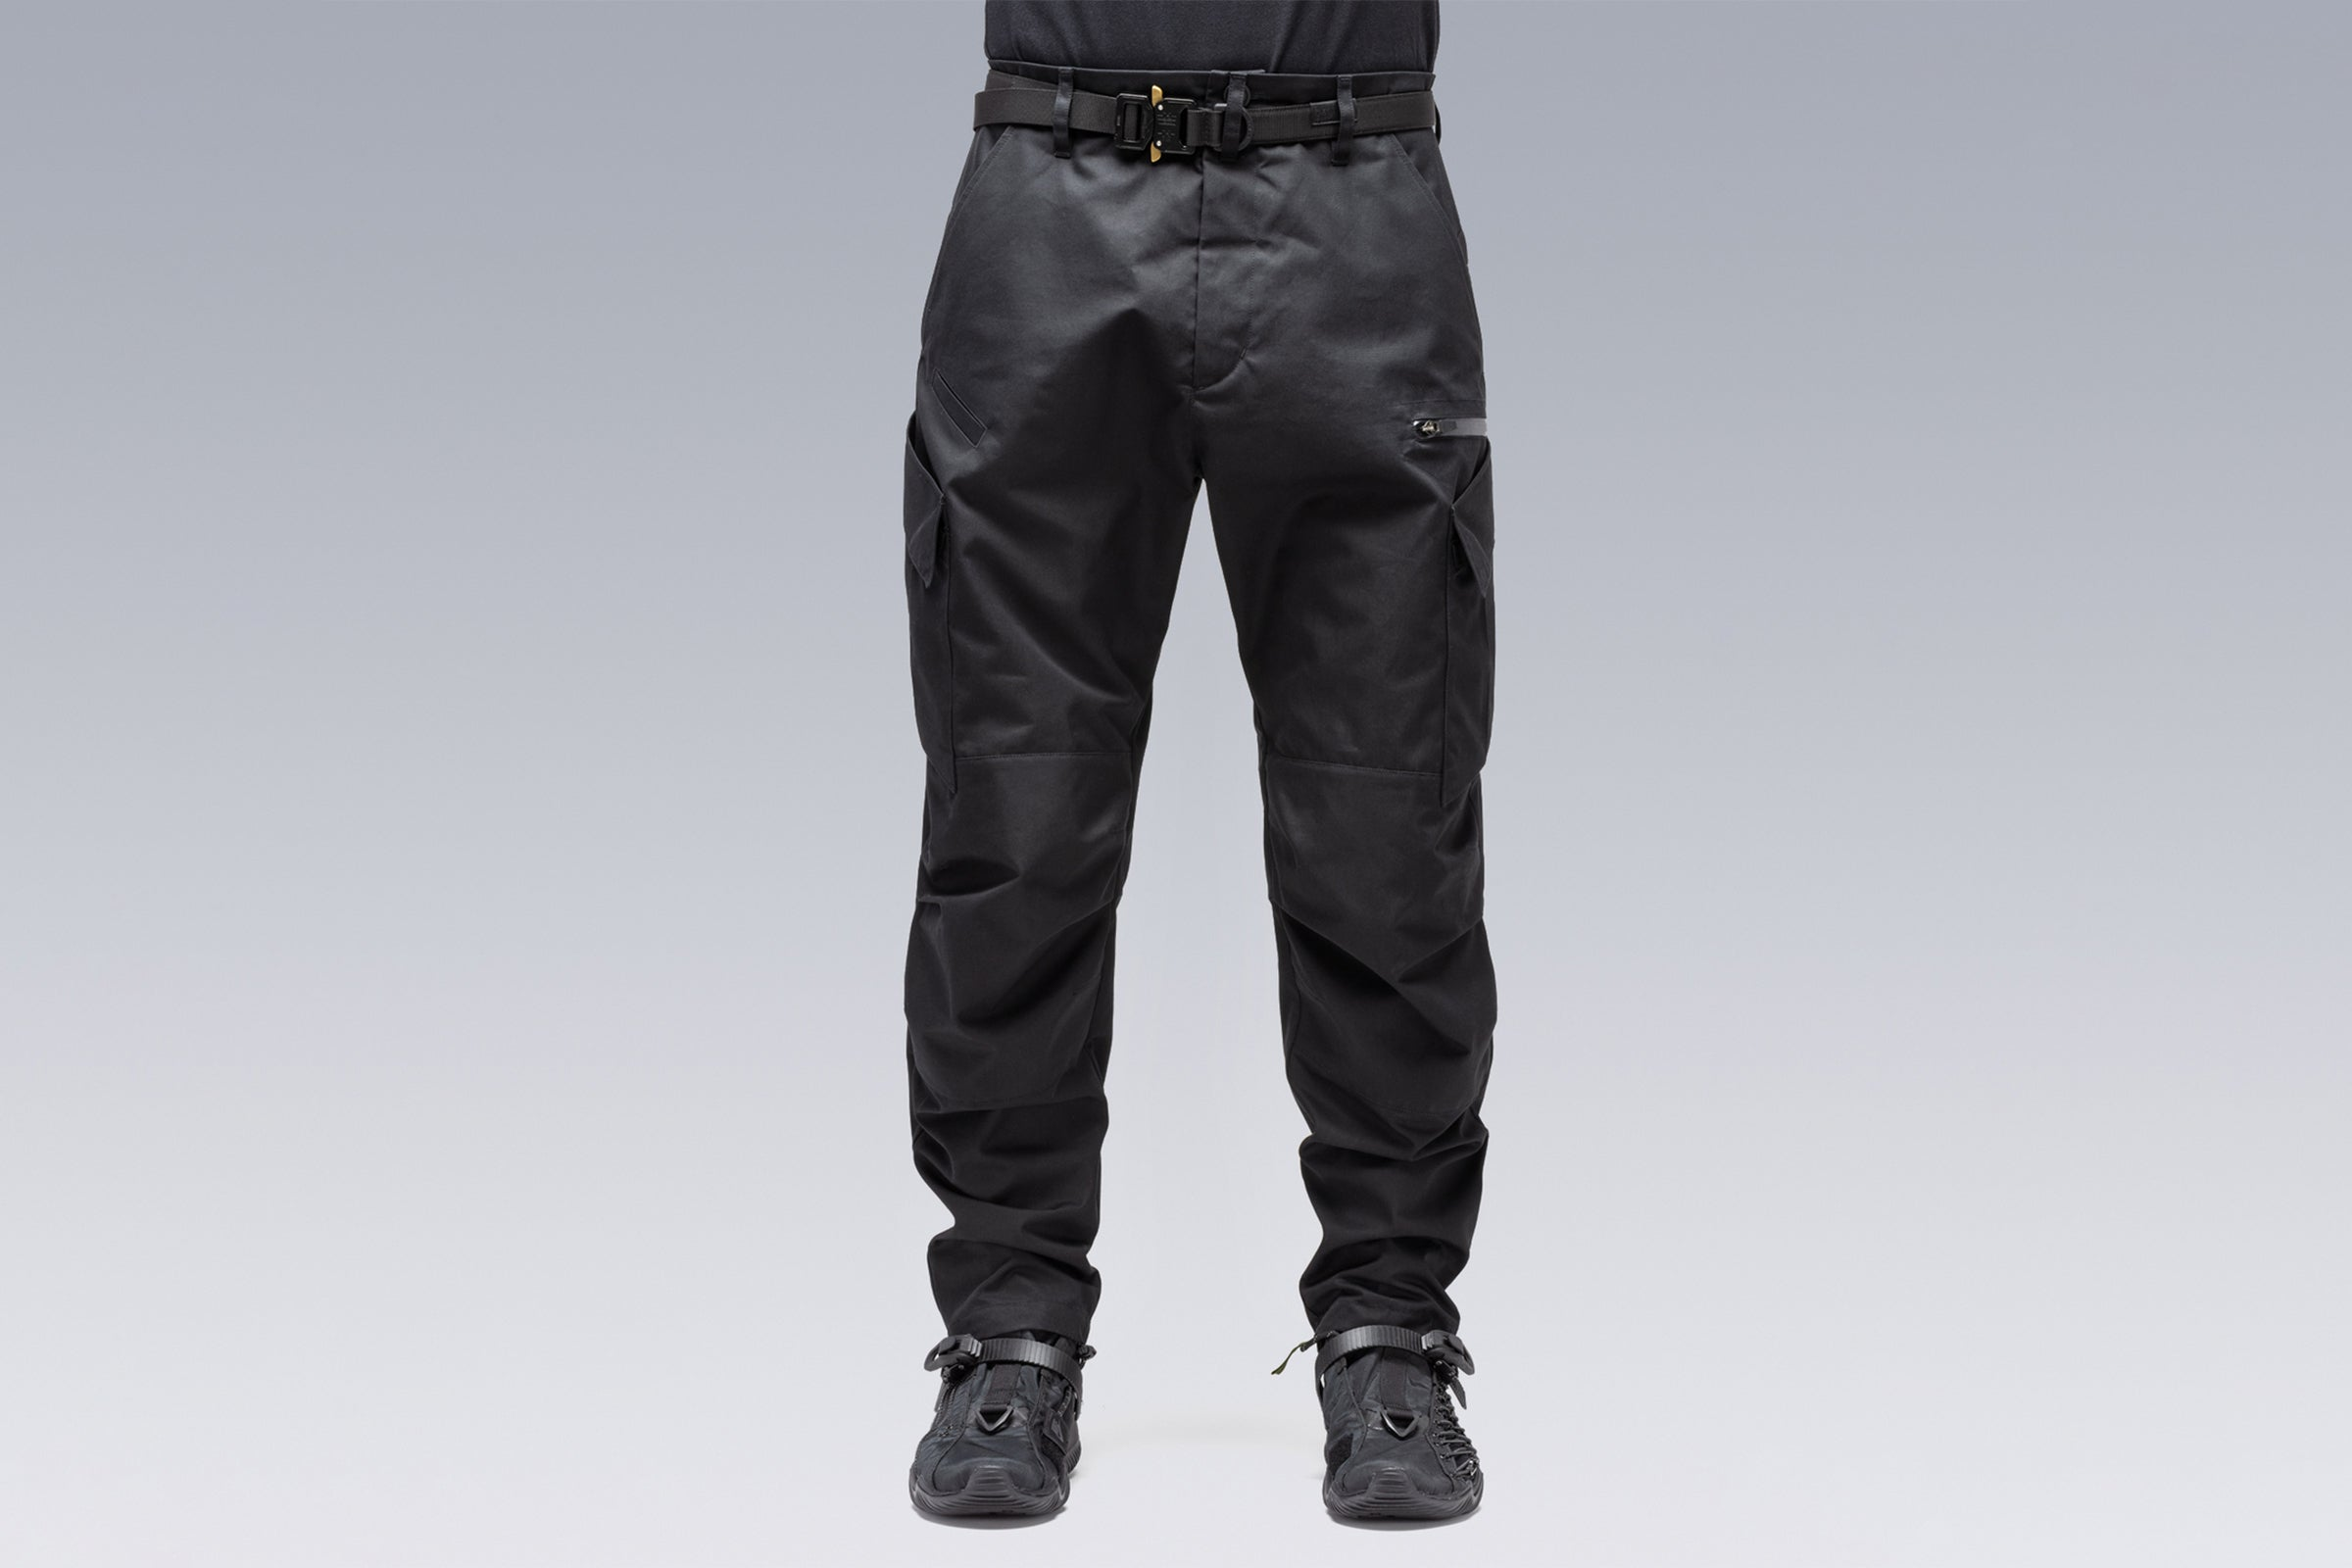 Acronym P34-S HD Cotton Articulated BDU Trouser